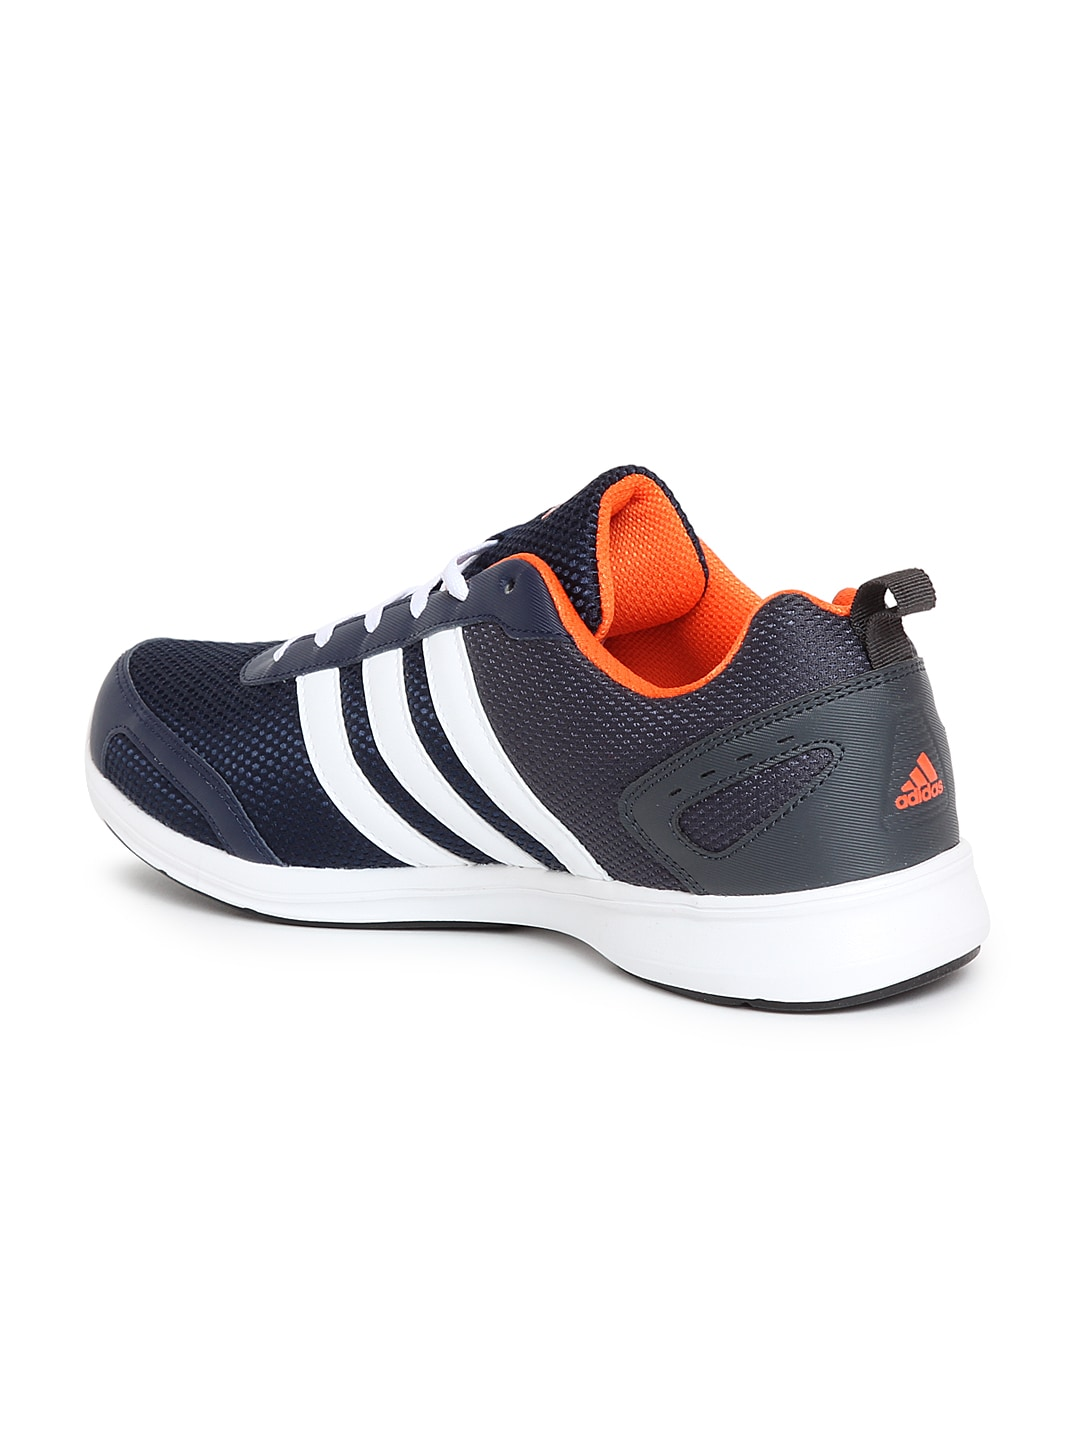 Adidas Shoes For Men New 2017